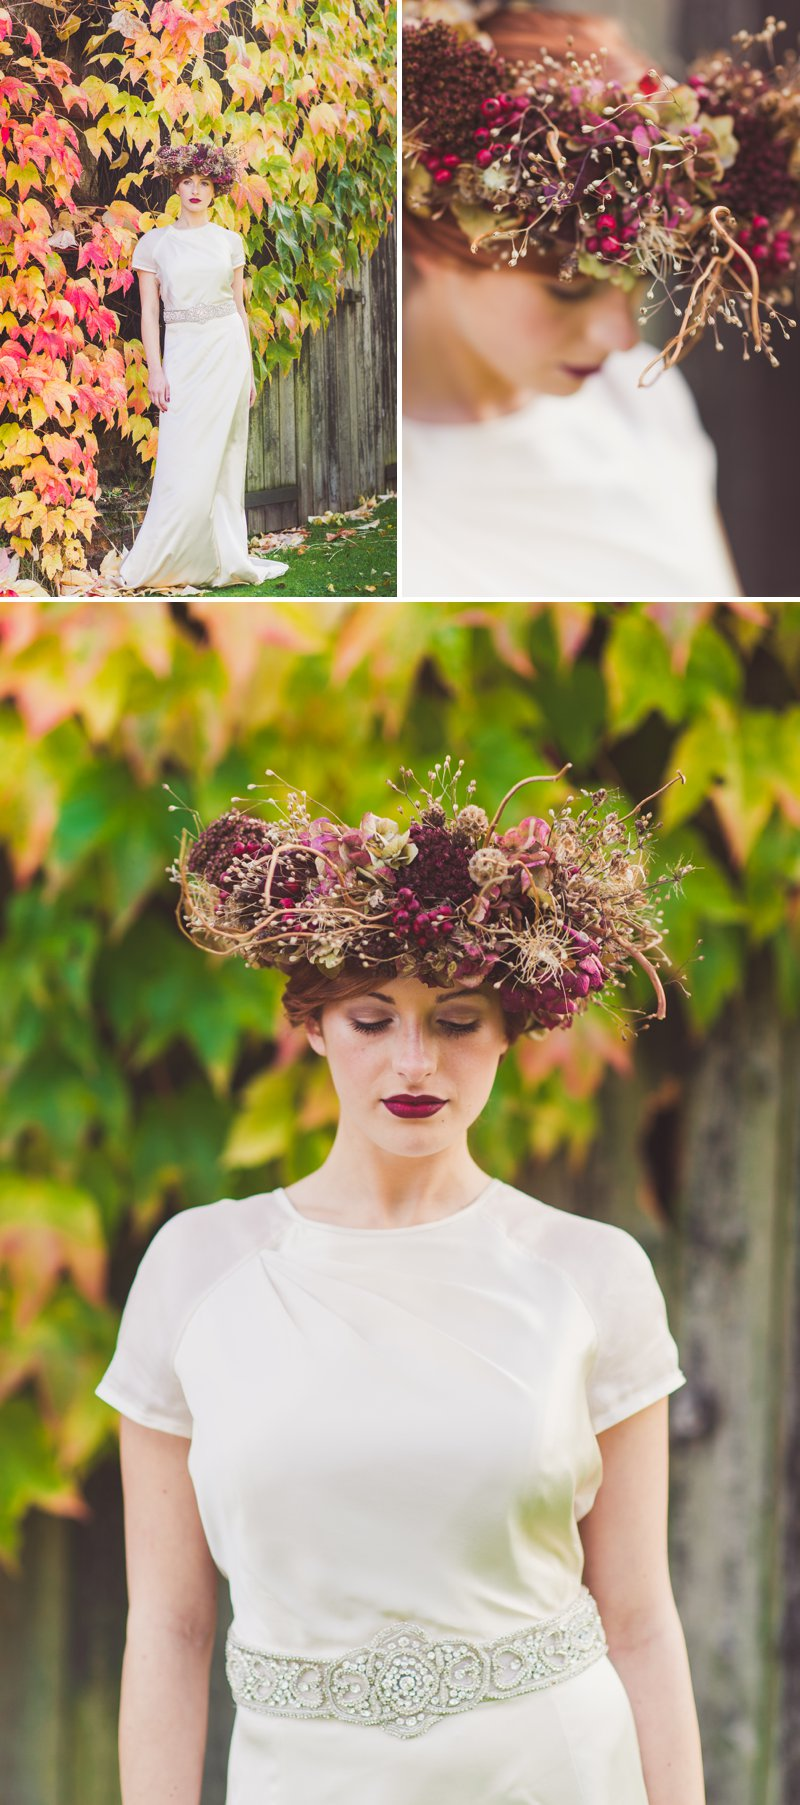 Autumn Fall Inspired Wedding Decor and Fashion Editorial by Rock My Wedding With Florals By Mrs Umbels, Make-up By Claire Salter Photographed By Rebekah J Murray._0001